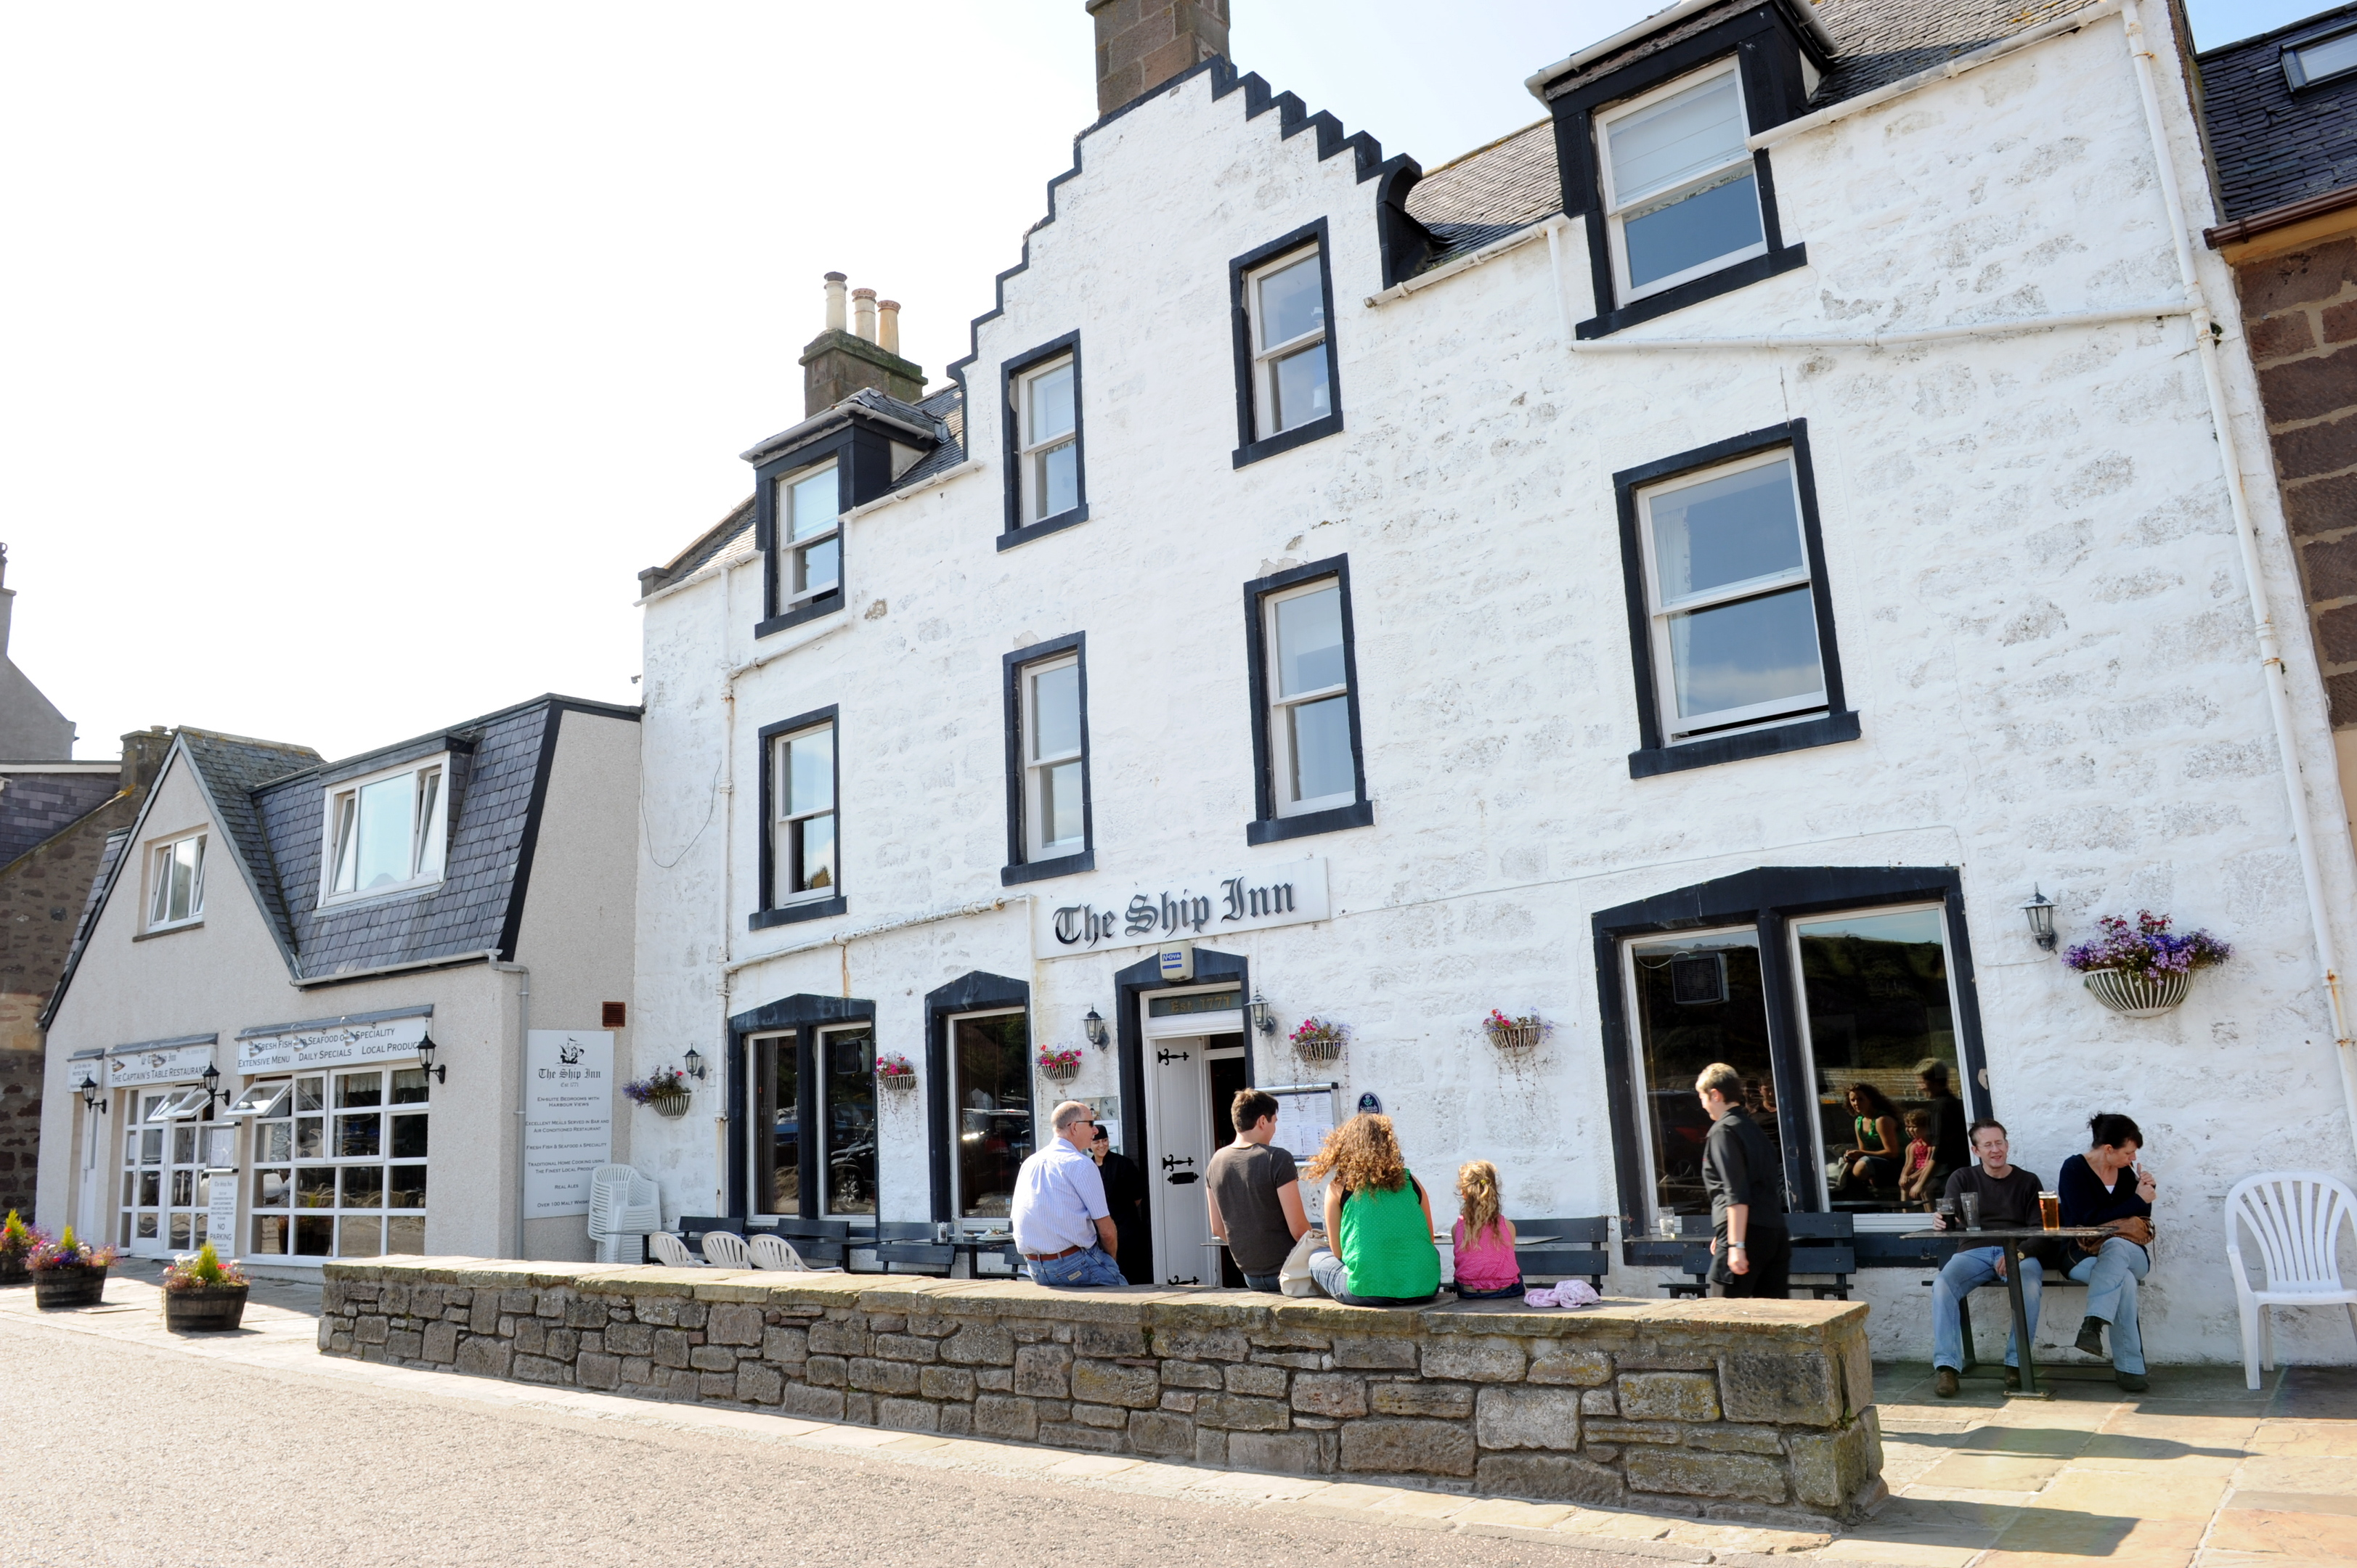 The Ship Inn at Stonehaven.